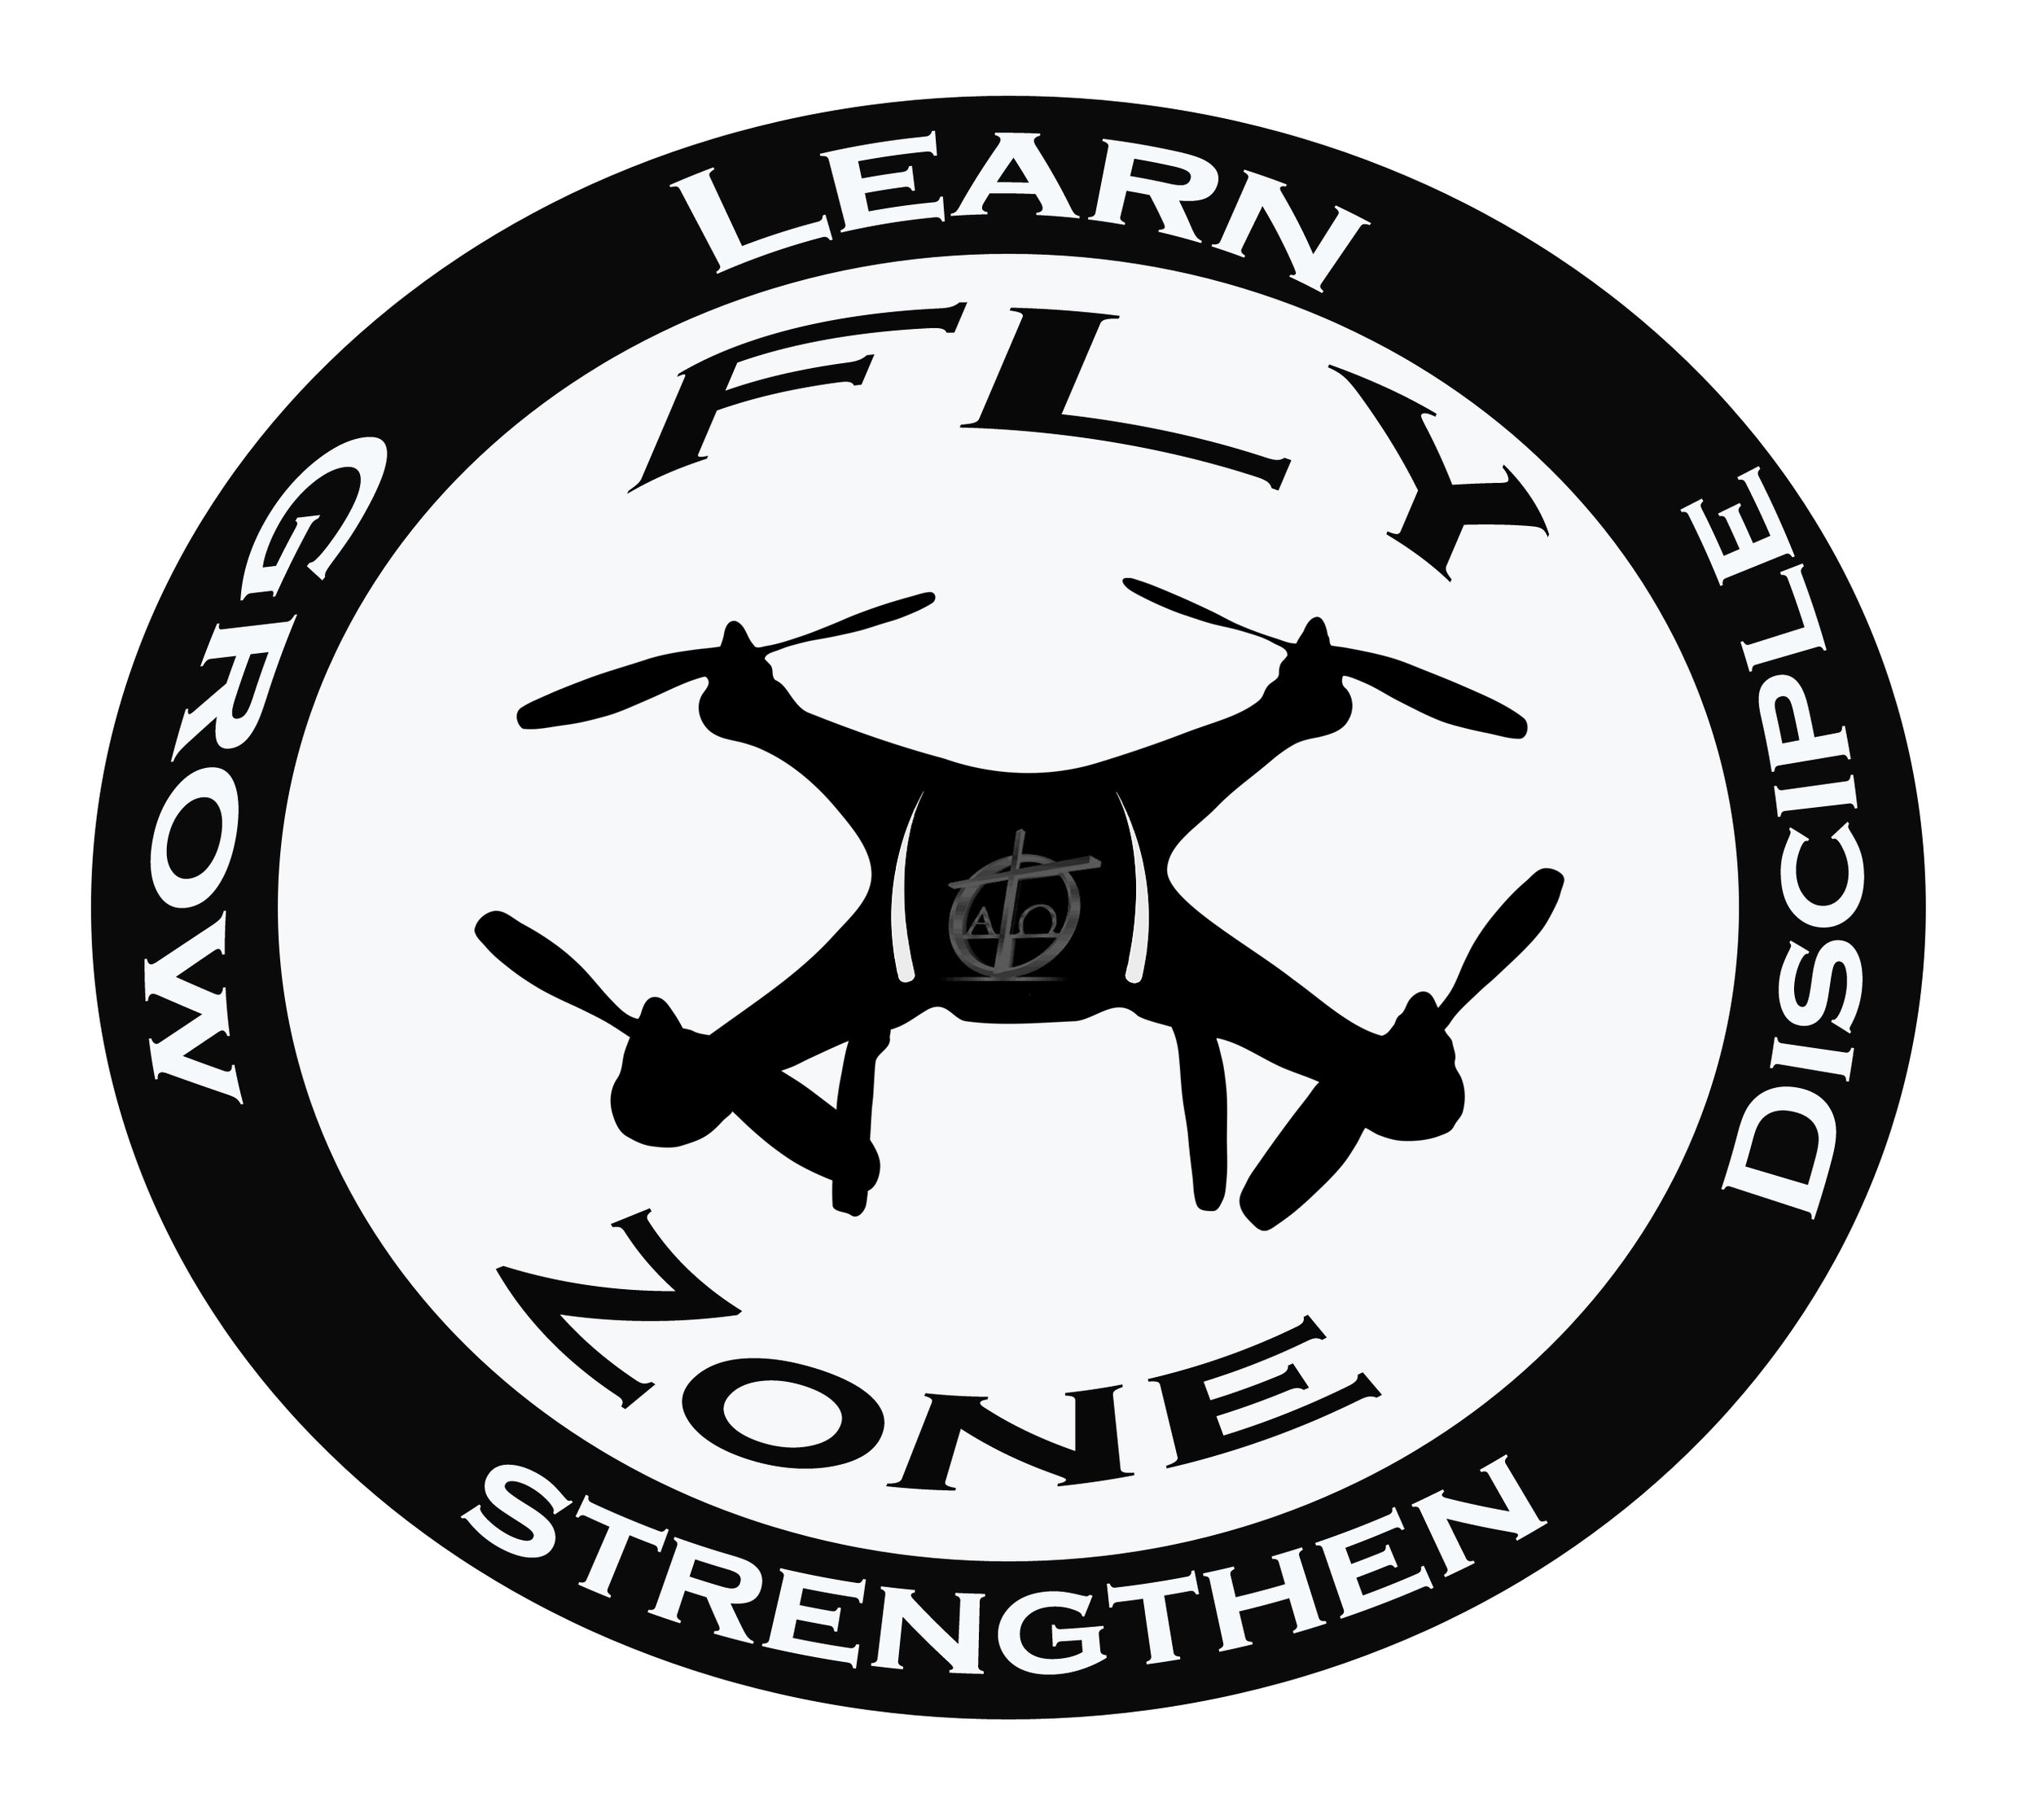 logo drone revised4.jpg